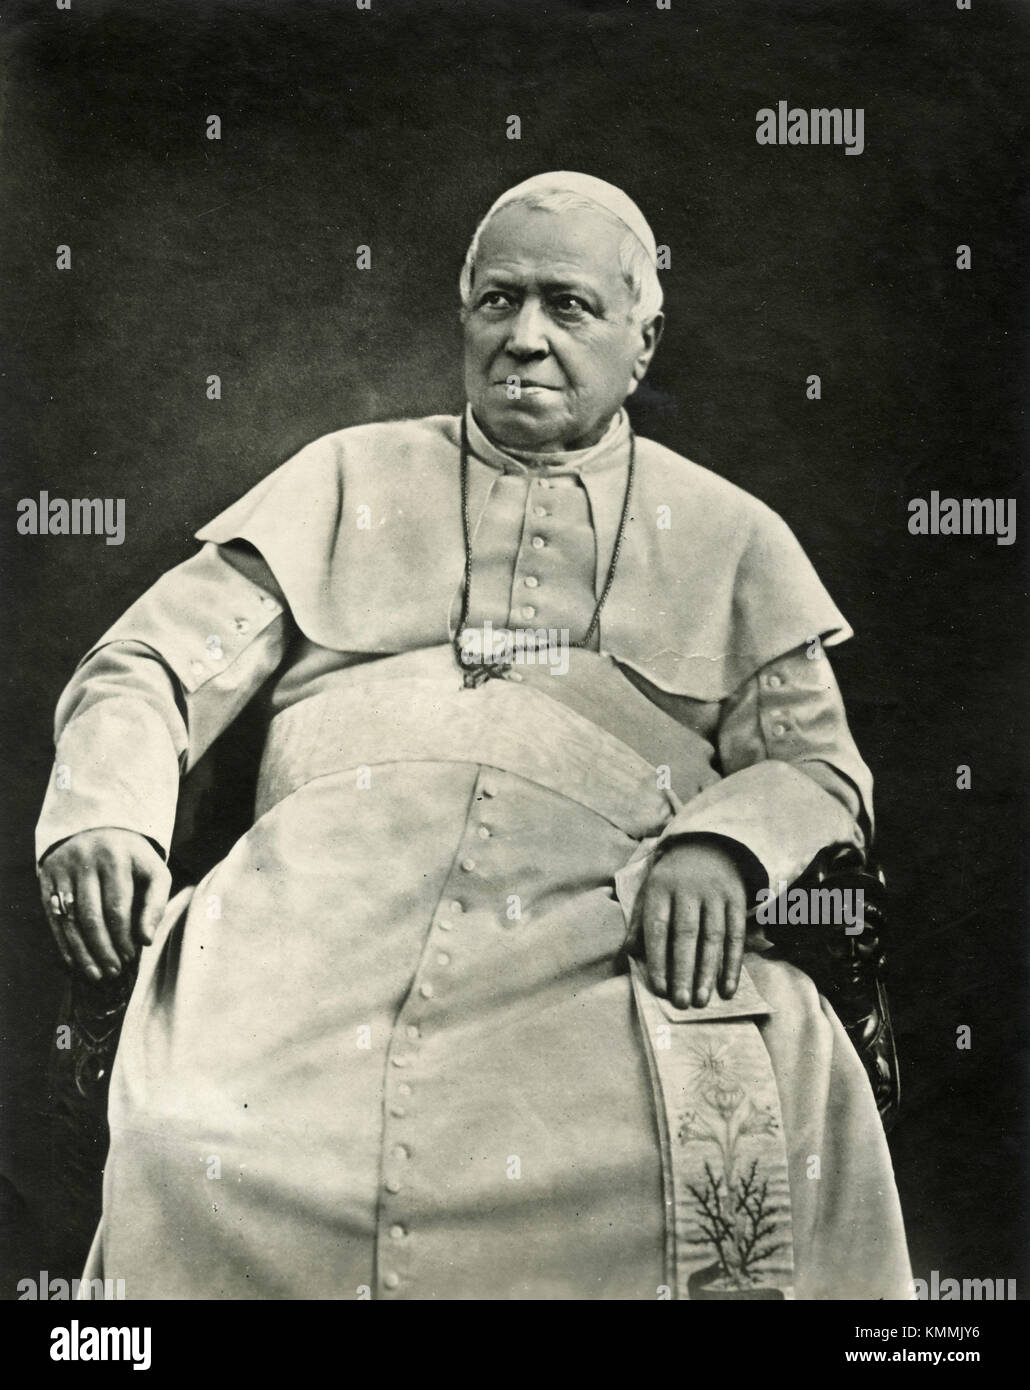 Portrait of Pope Pius IX by Braun, 1878 - Stock Image